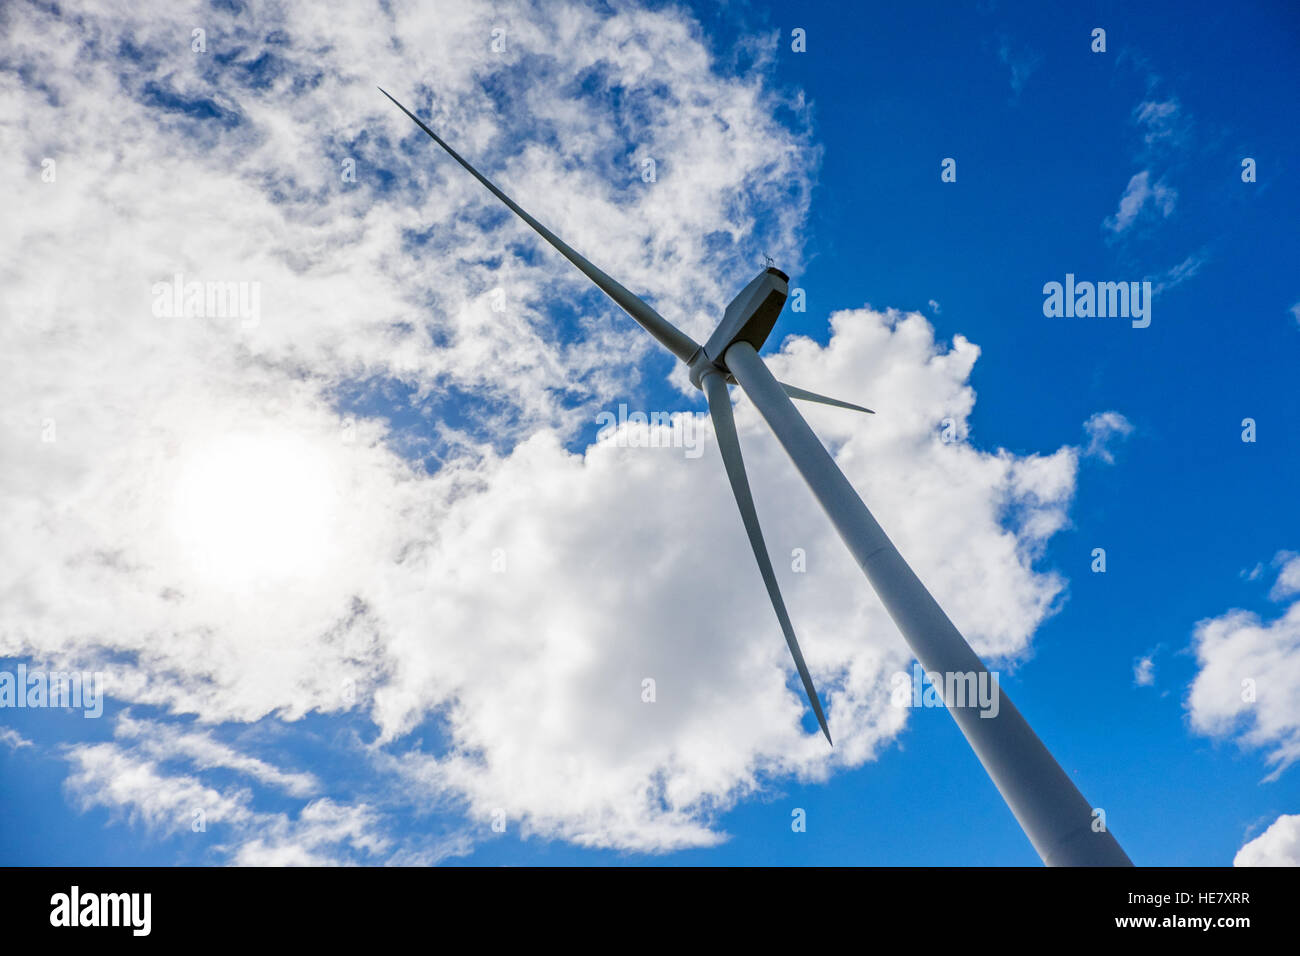 Wind turbine against a blue sky, Australia - Stock Image